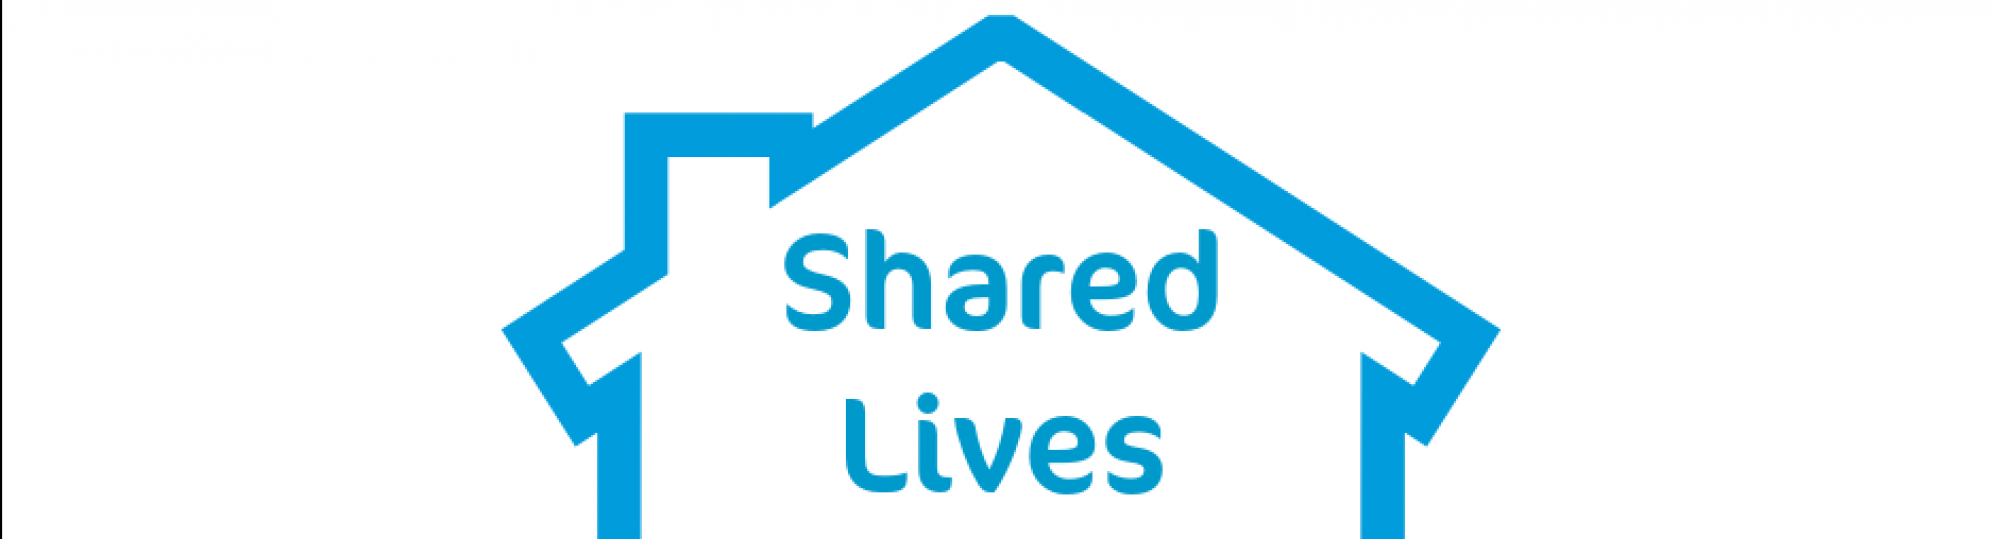 Shared Lives Case Studies